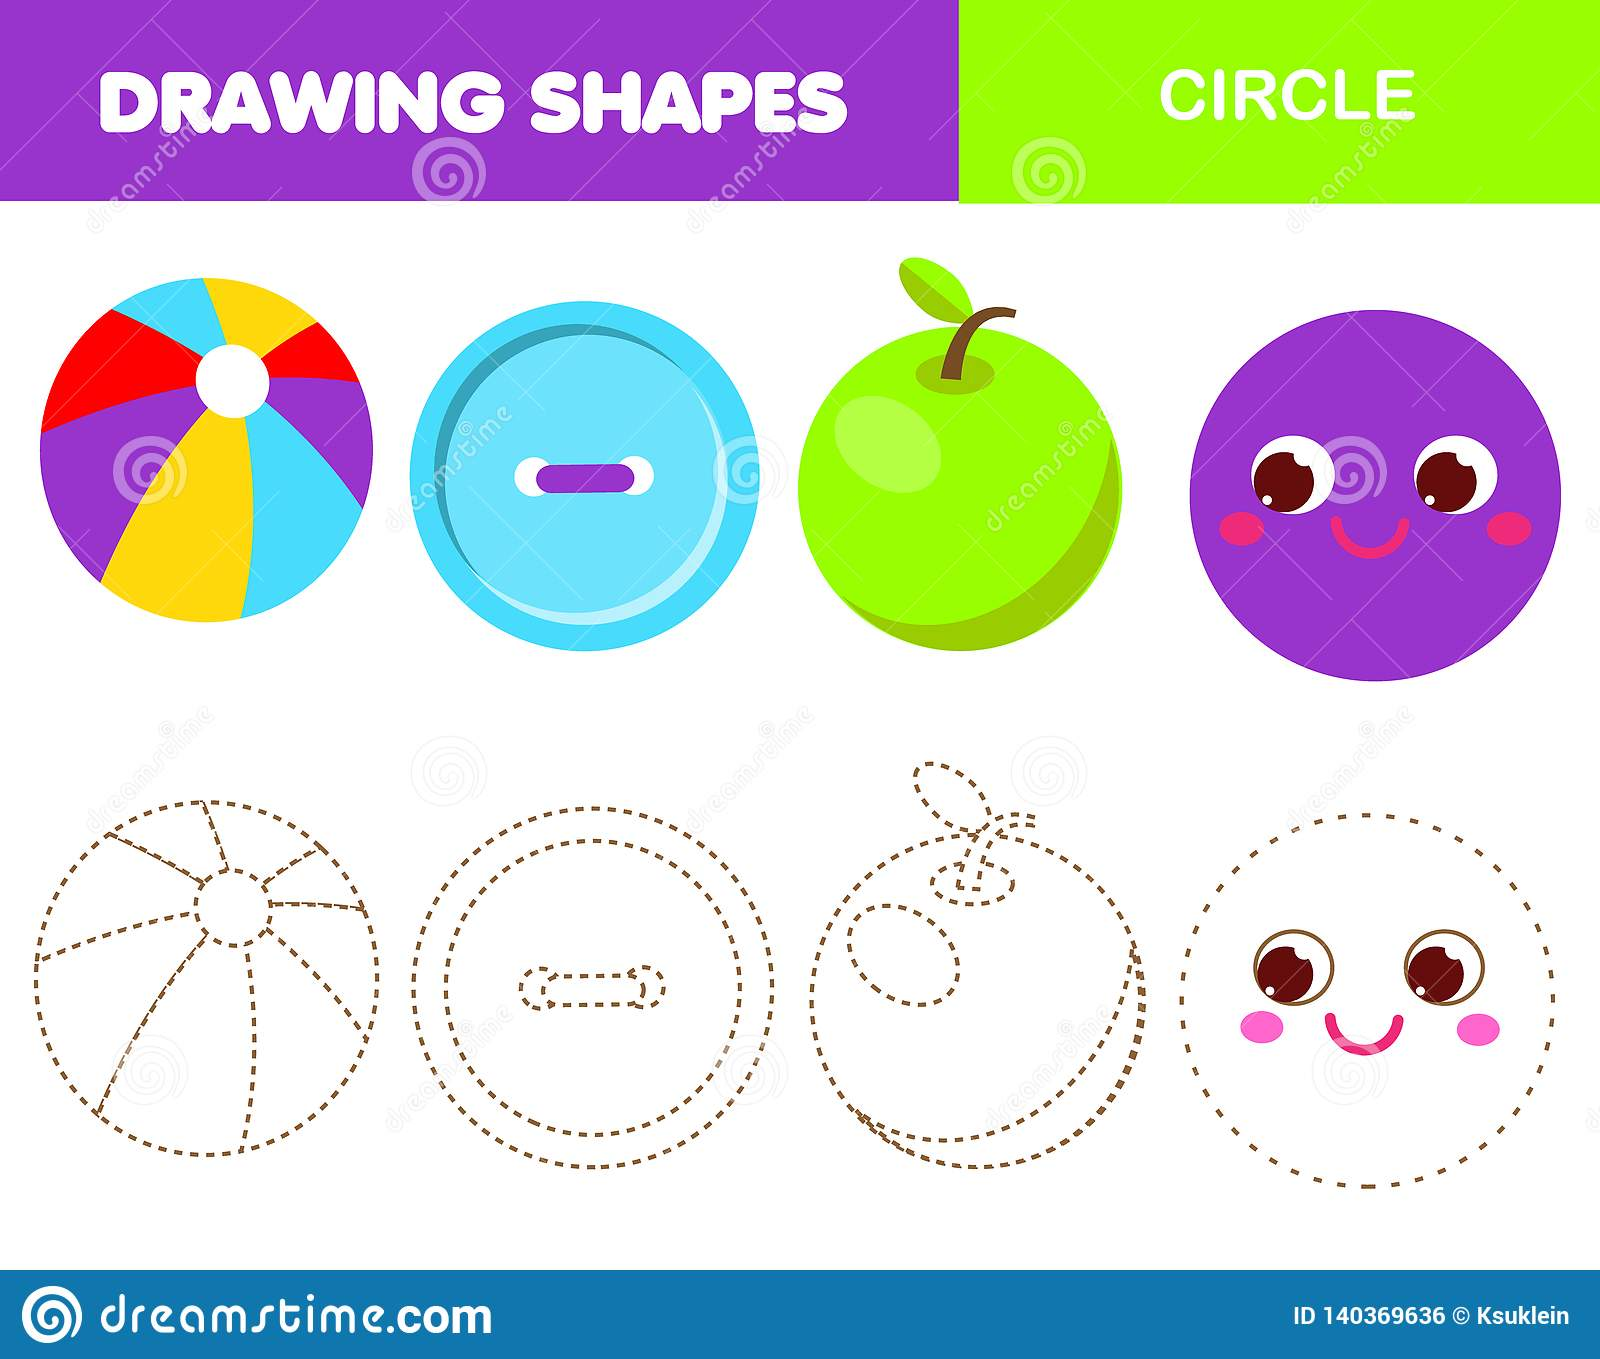 Learning Geometric Shapes For Kids Circle Handwriting